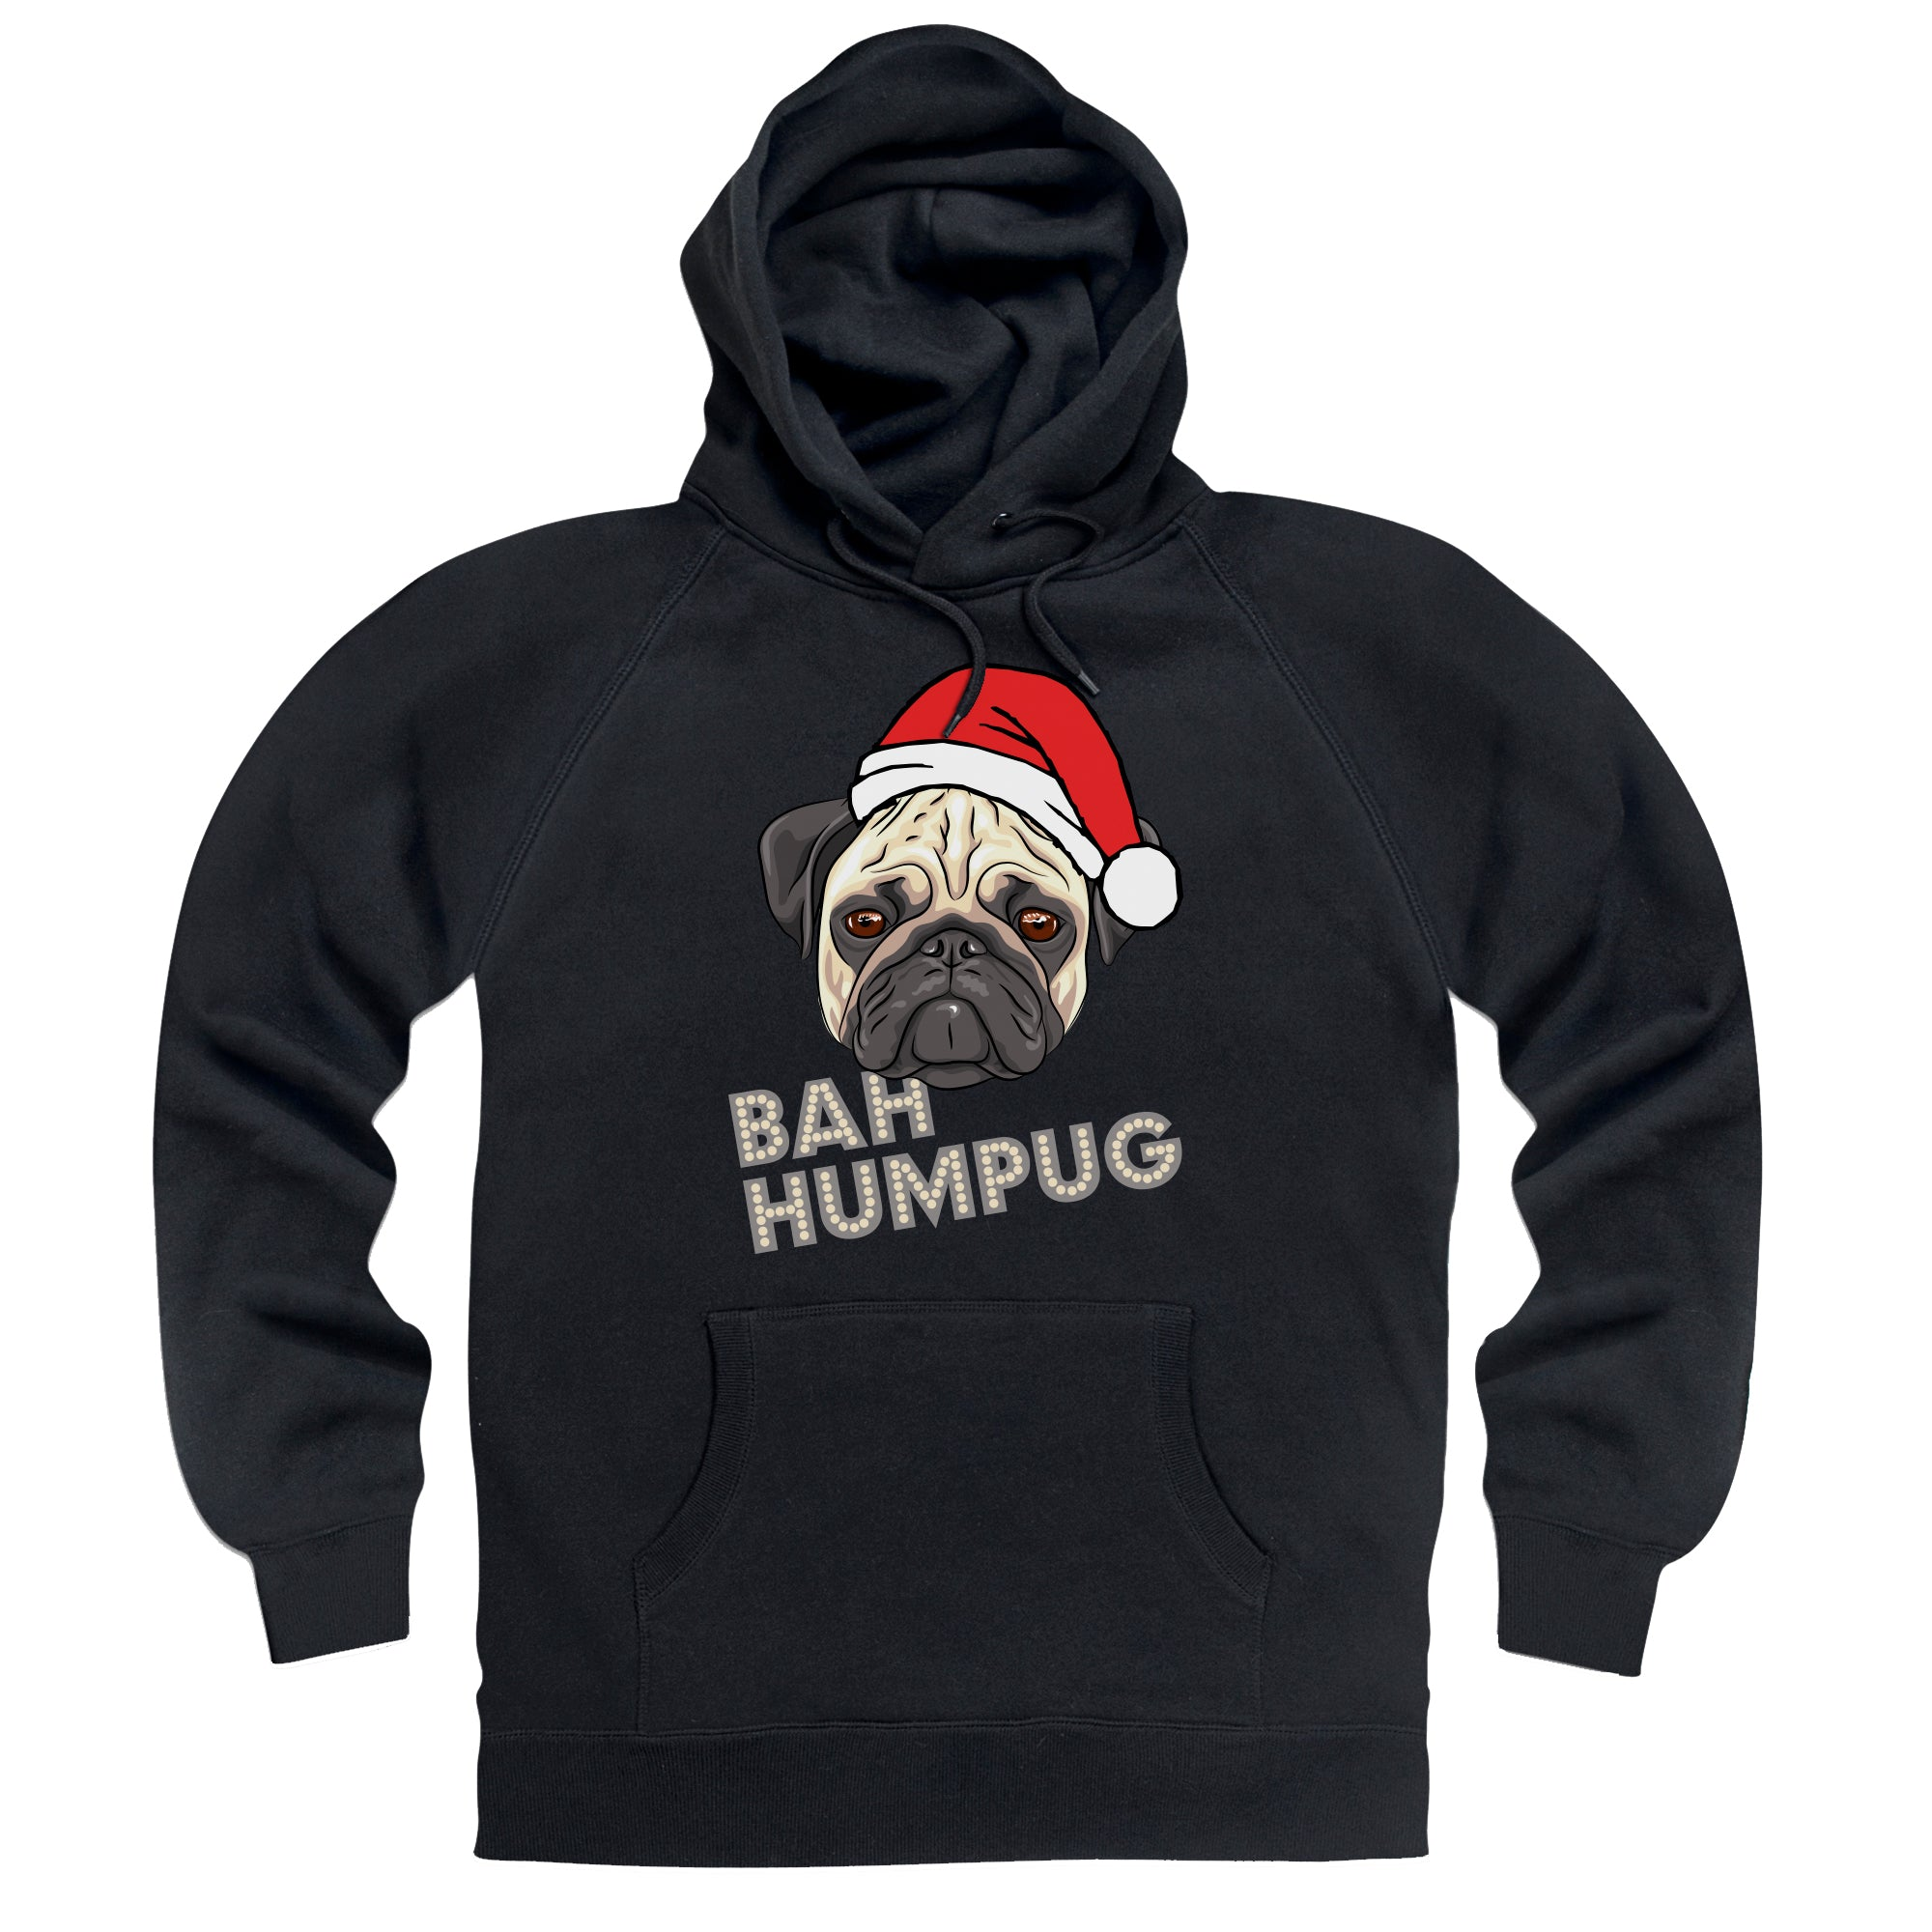 CHEAP Bah Humpug Hoodie 28028844291 – Clothing Accessories